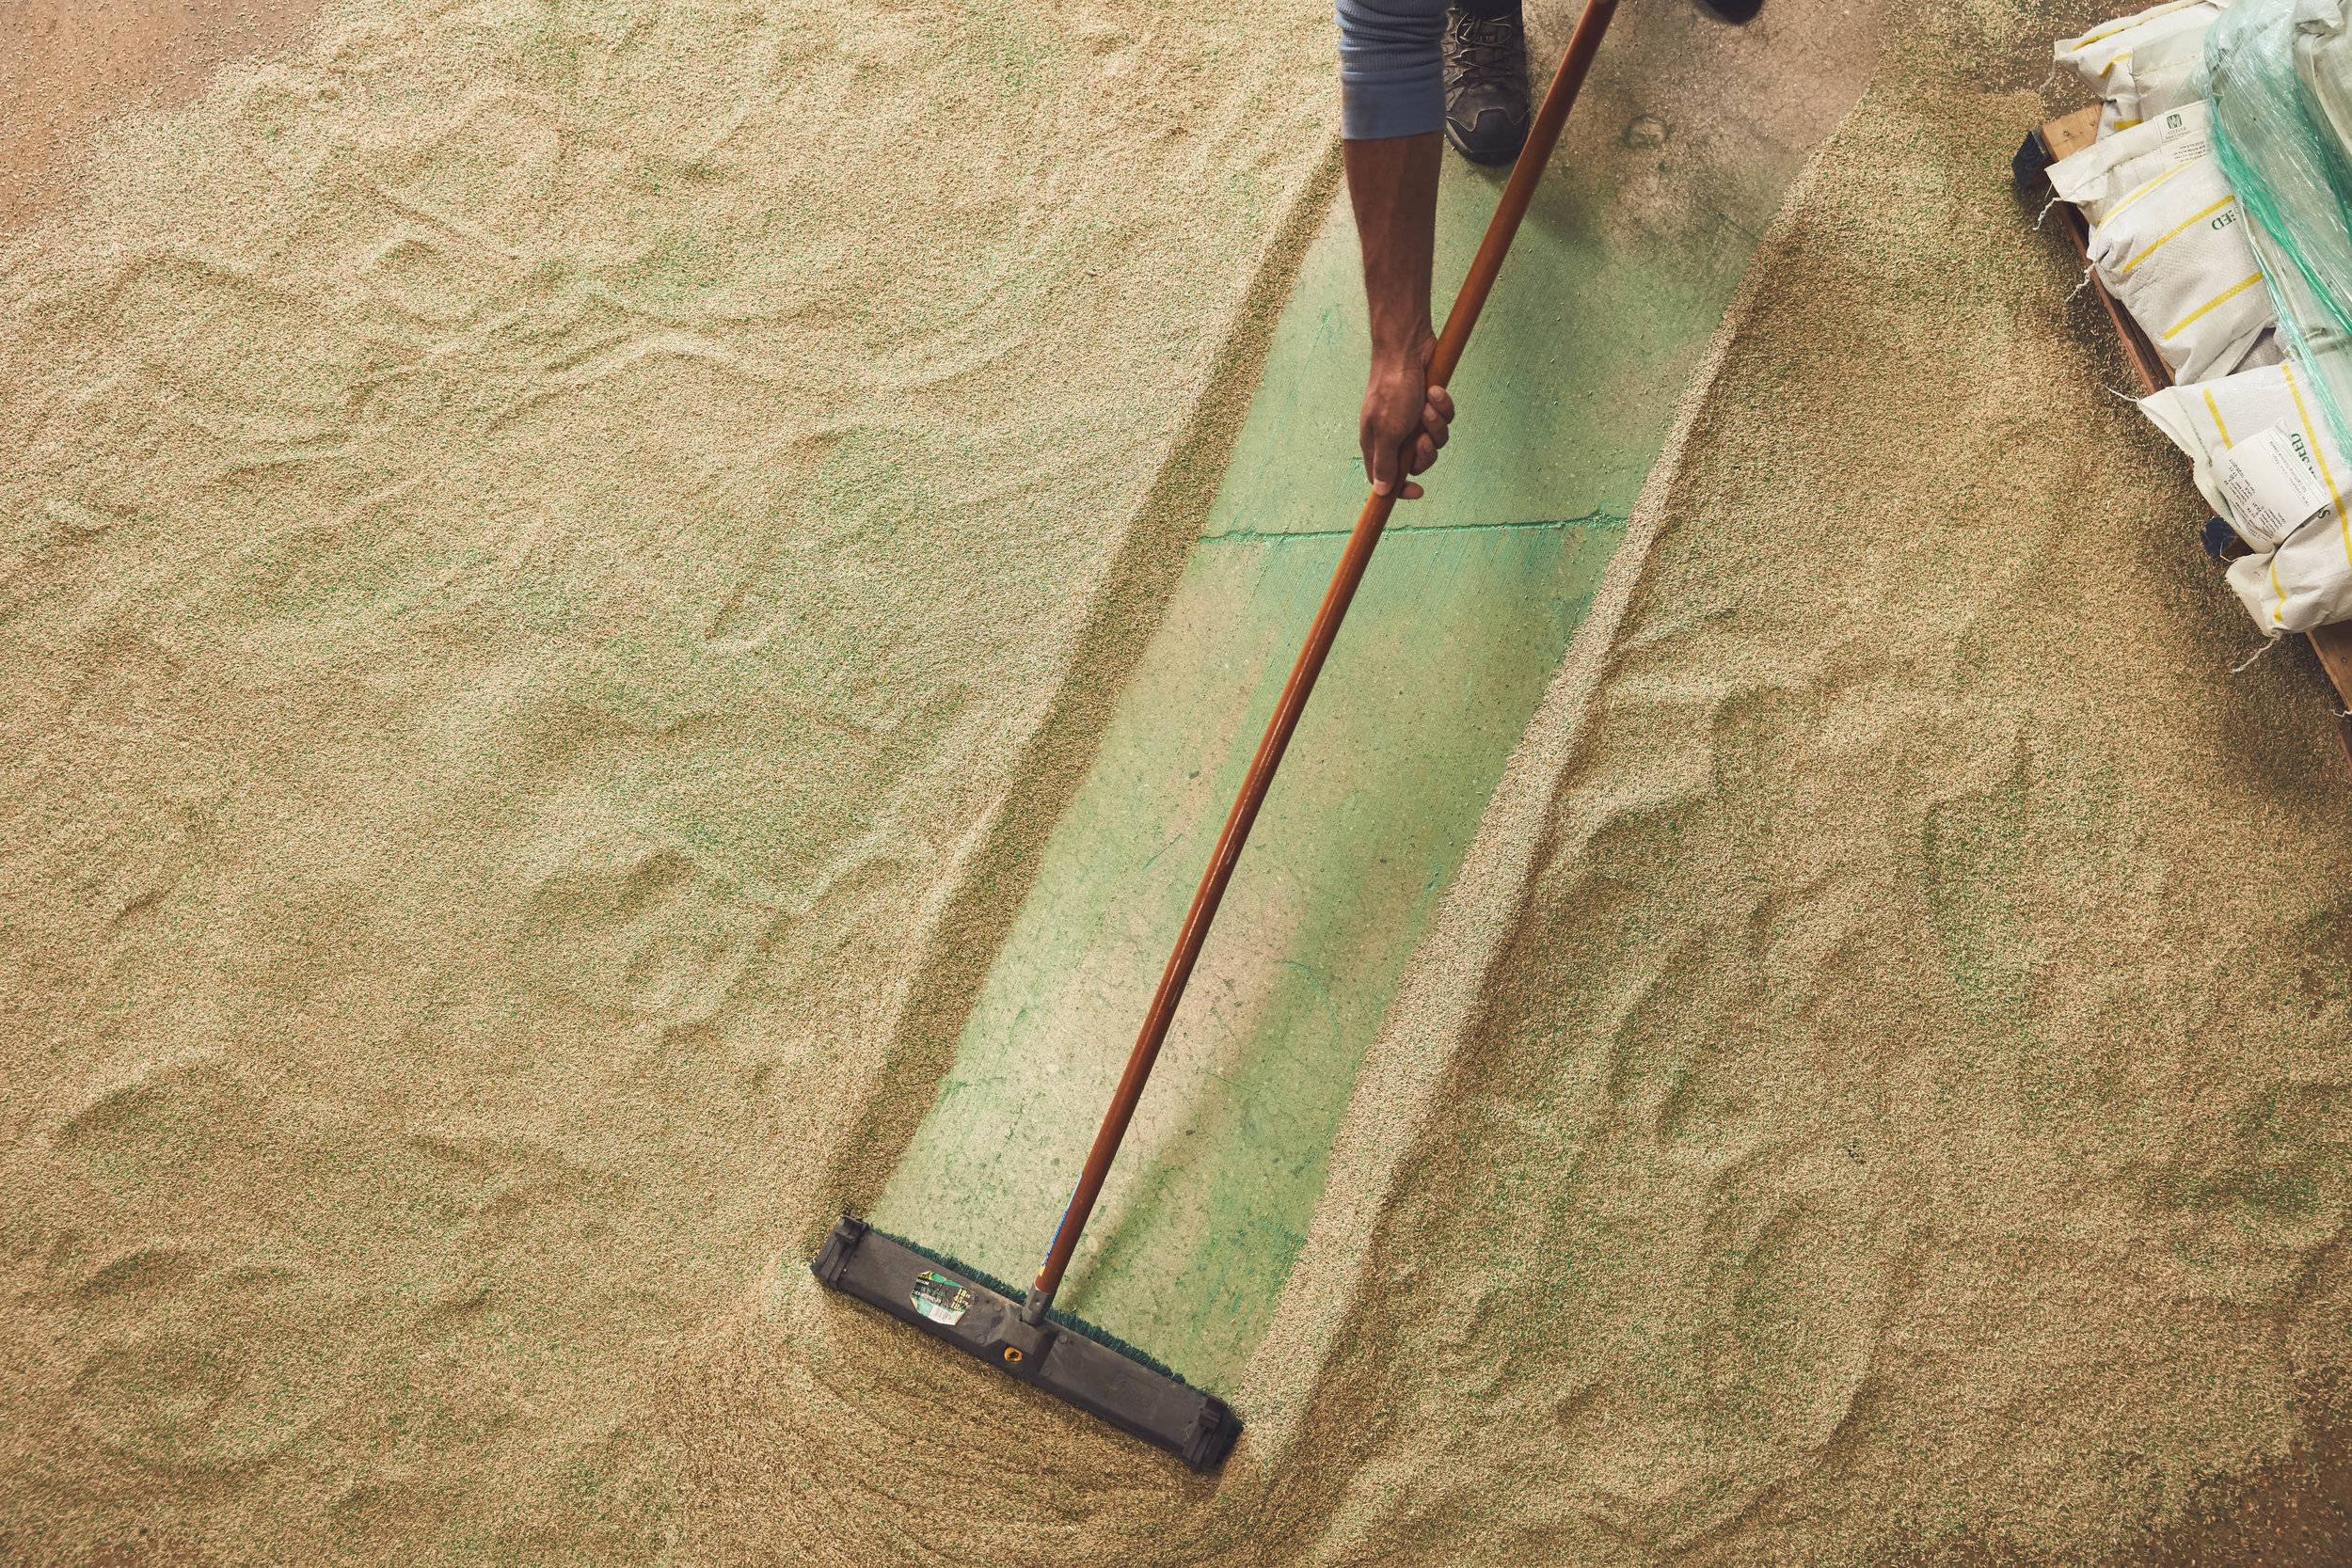 UF_Seed_Sweeping-0065.jpg